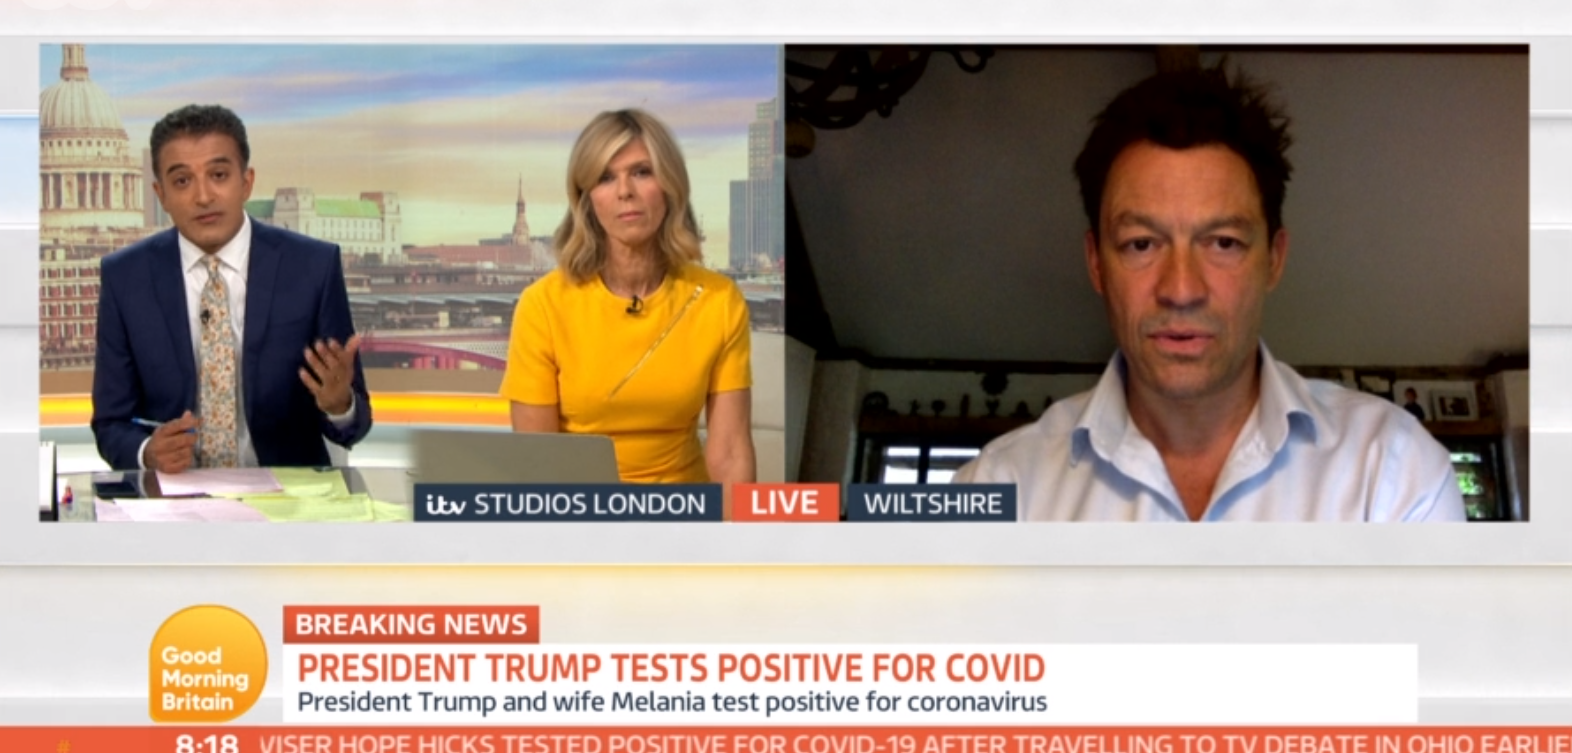 Dominic West on GMB